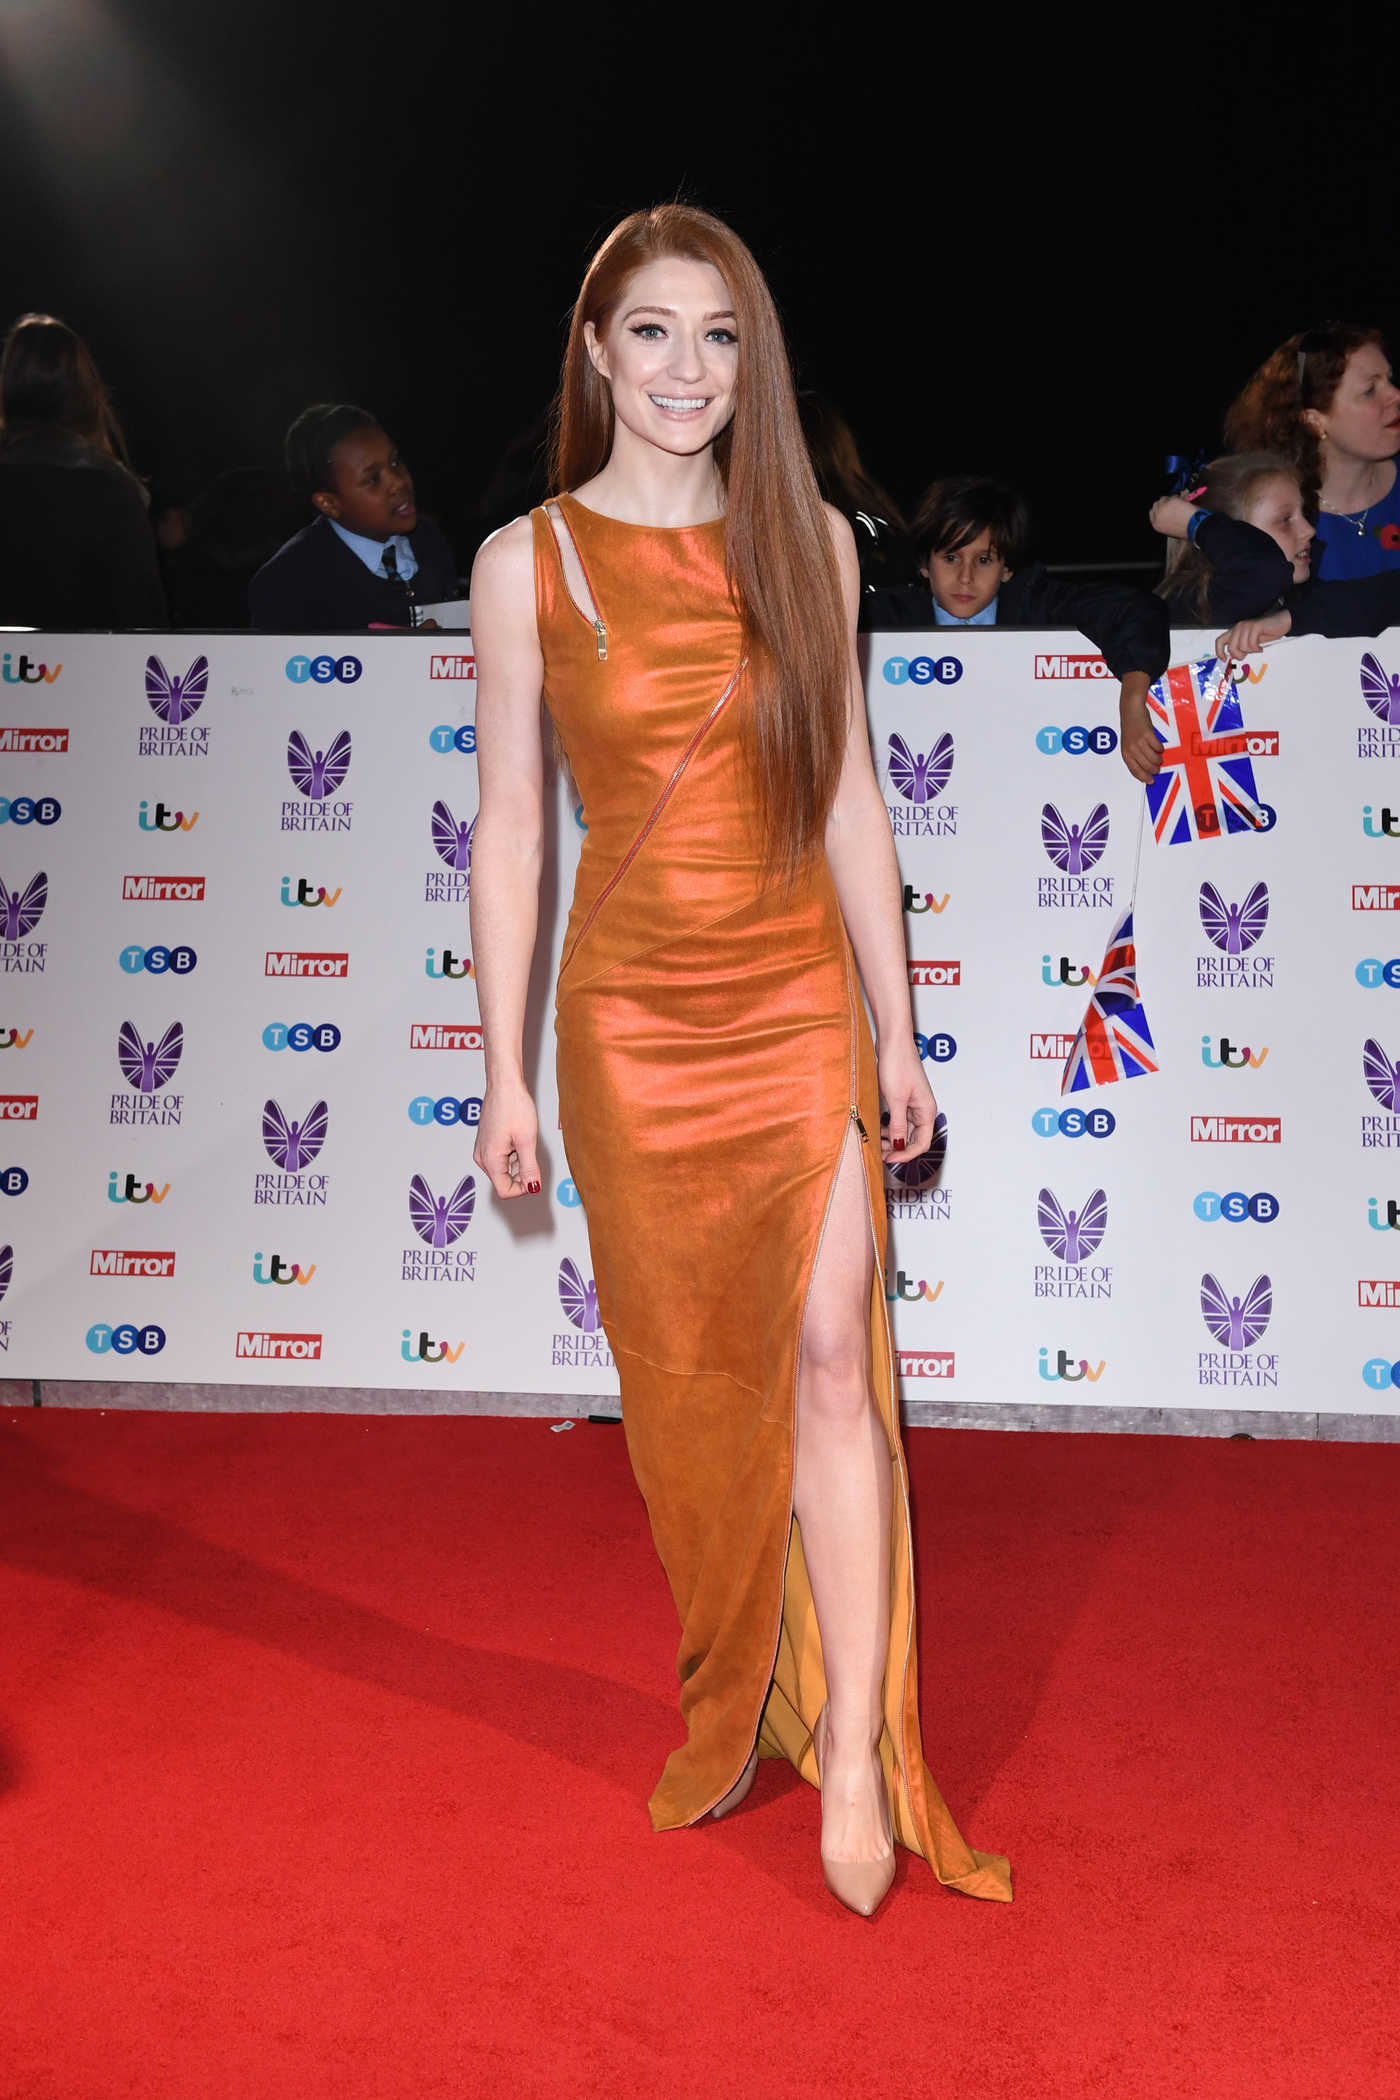 Nicola Roberts at the Pride of Britain Awards at the Grosvenor House in London 10/31/2016